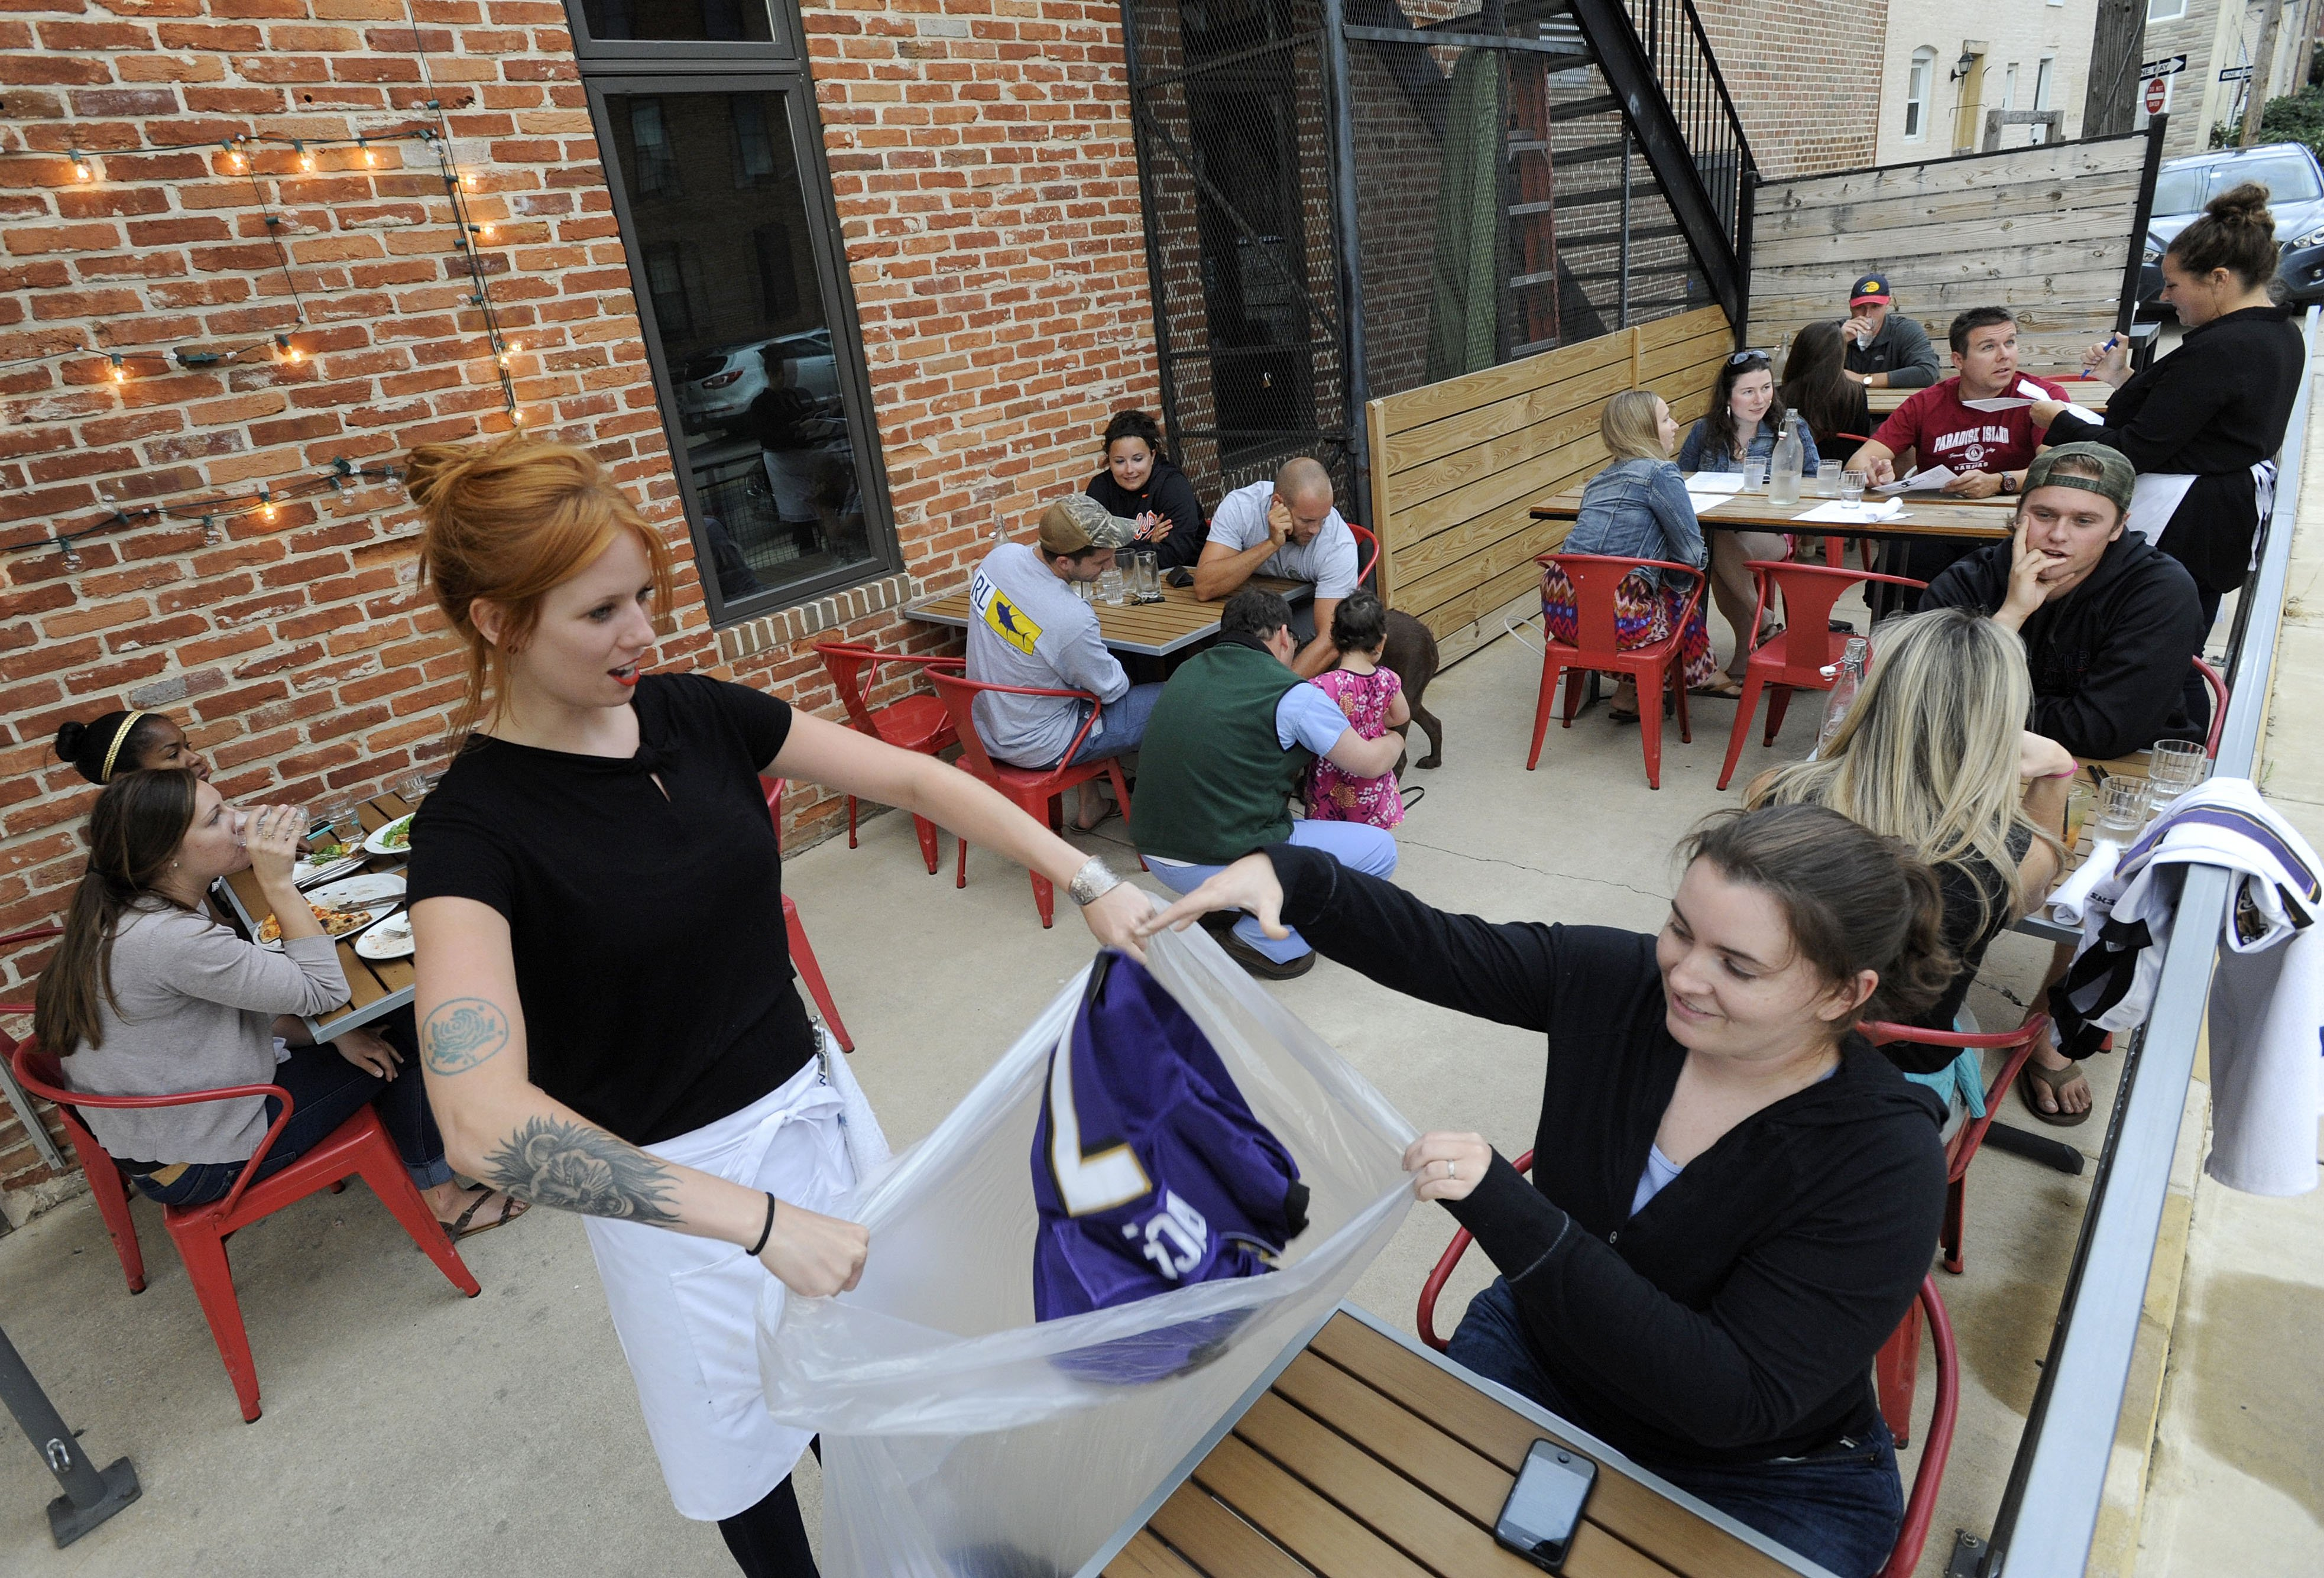 Bartender Abby Hopper, left, of Baltimore, collects a Ray Rice Baltimore Ravens football jersey from Erin McGonigle, right, of Arbutus, Md., at Hersh's Pizza and Drinks, a Baltimore restaurant that offered a free personal pizza in exchange for Rice jerseys on Sept. 8, 2014.